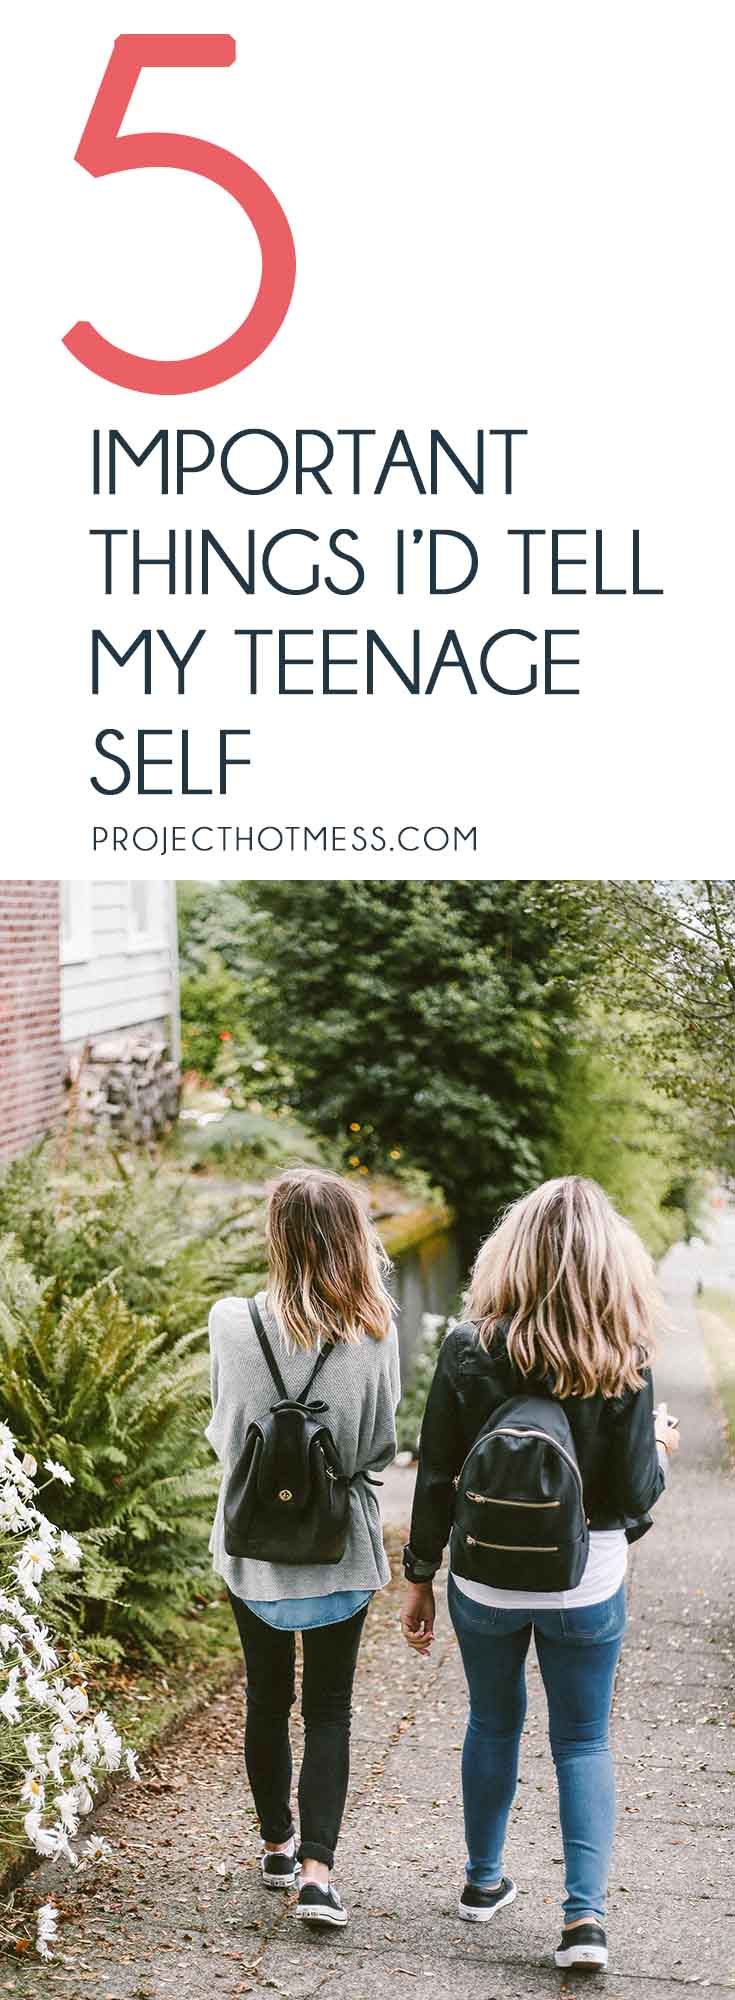 Imagine if you could go back and give yourself all of the life lessons you have now - there are so many important things I would tell my teenage self. Teenagers | Life Lessons | Confidence | Self Confidence | Self Esteem | Love Yourself | Confidence Building | Confident Woman | Confidence In Yourself | Confident